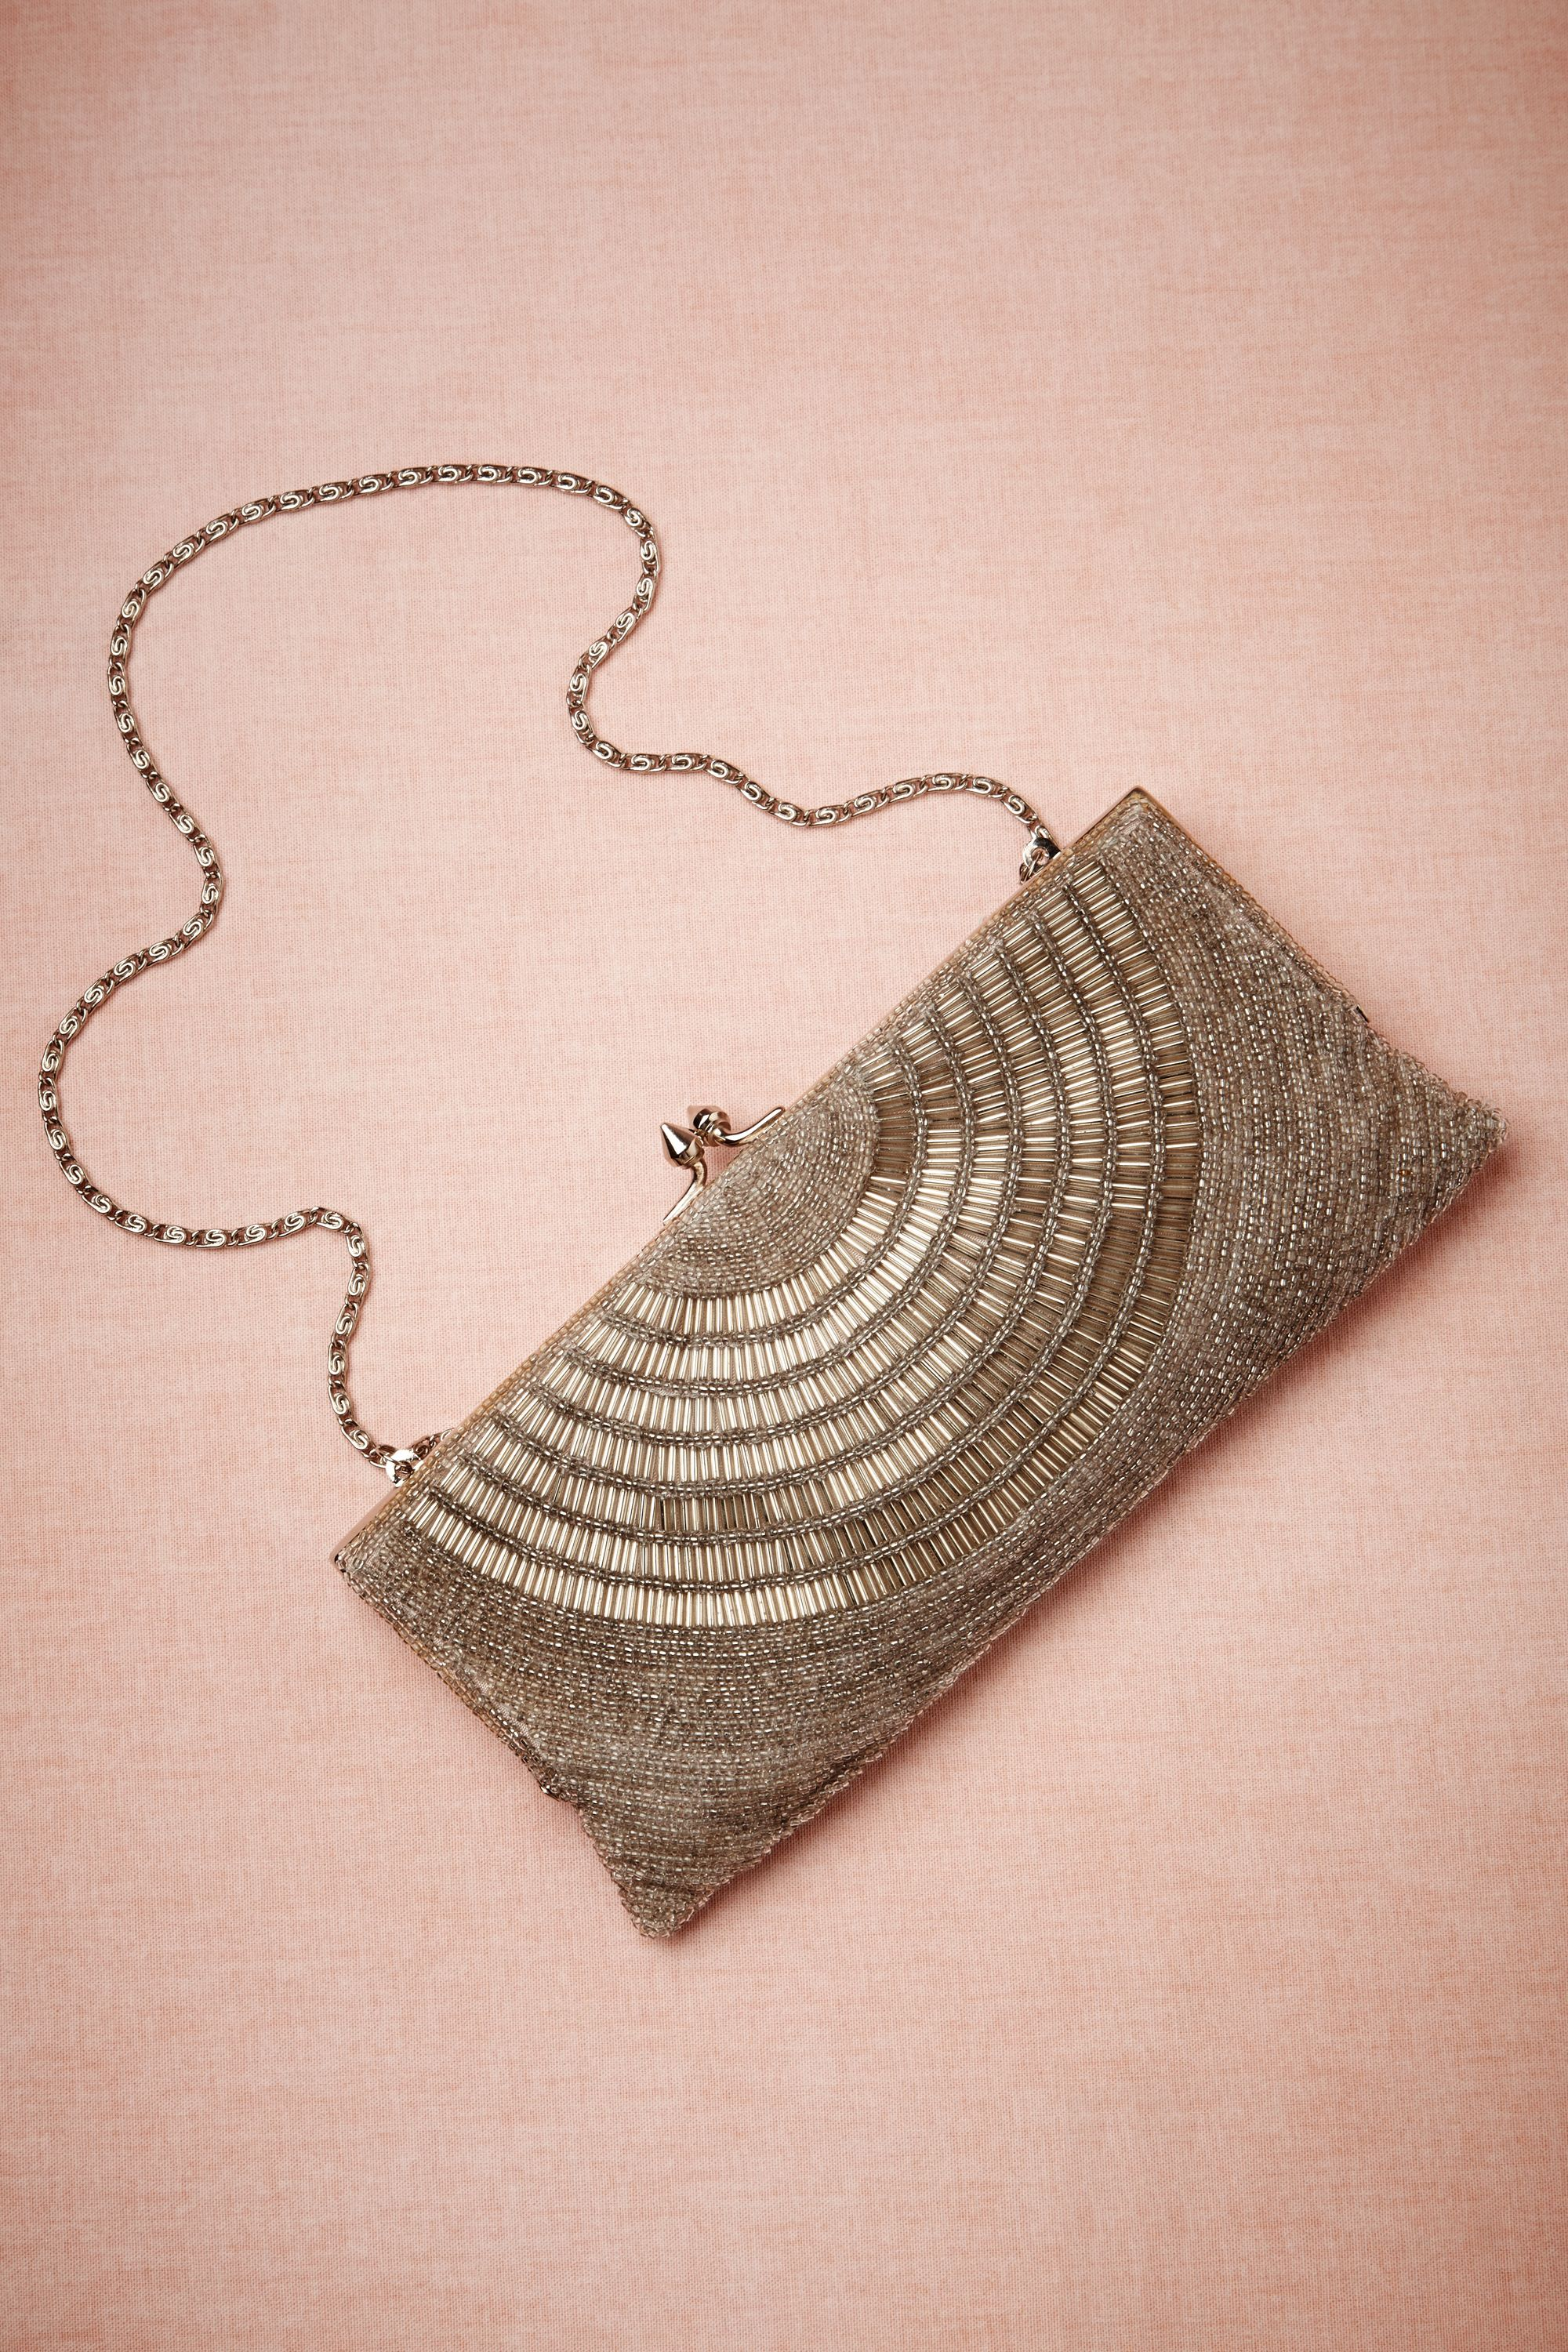 Deco Beaded Clutch